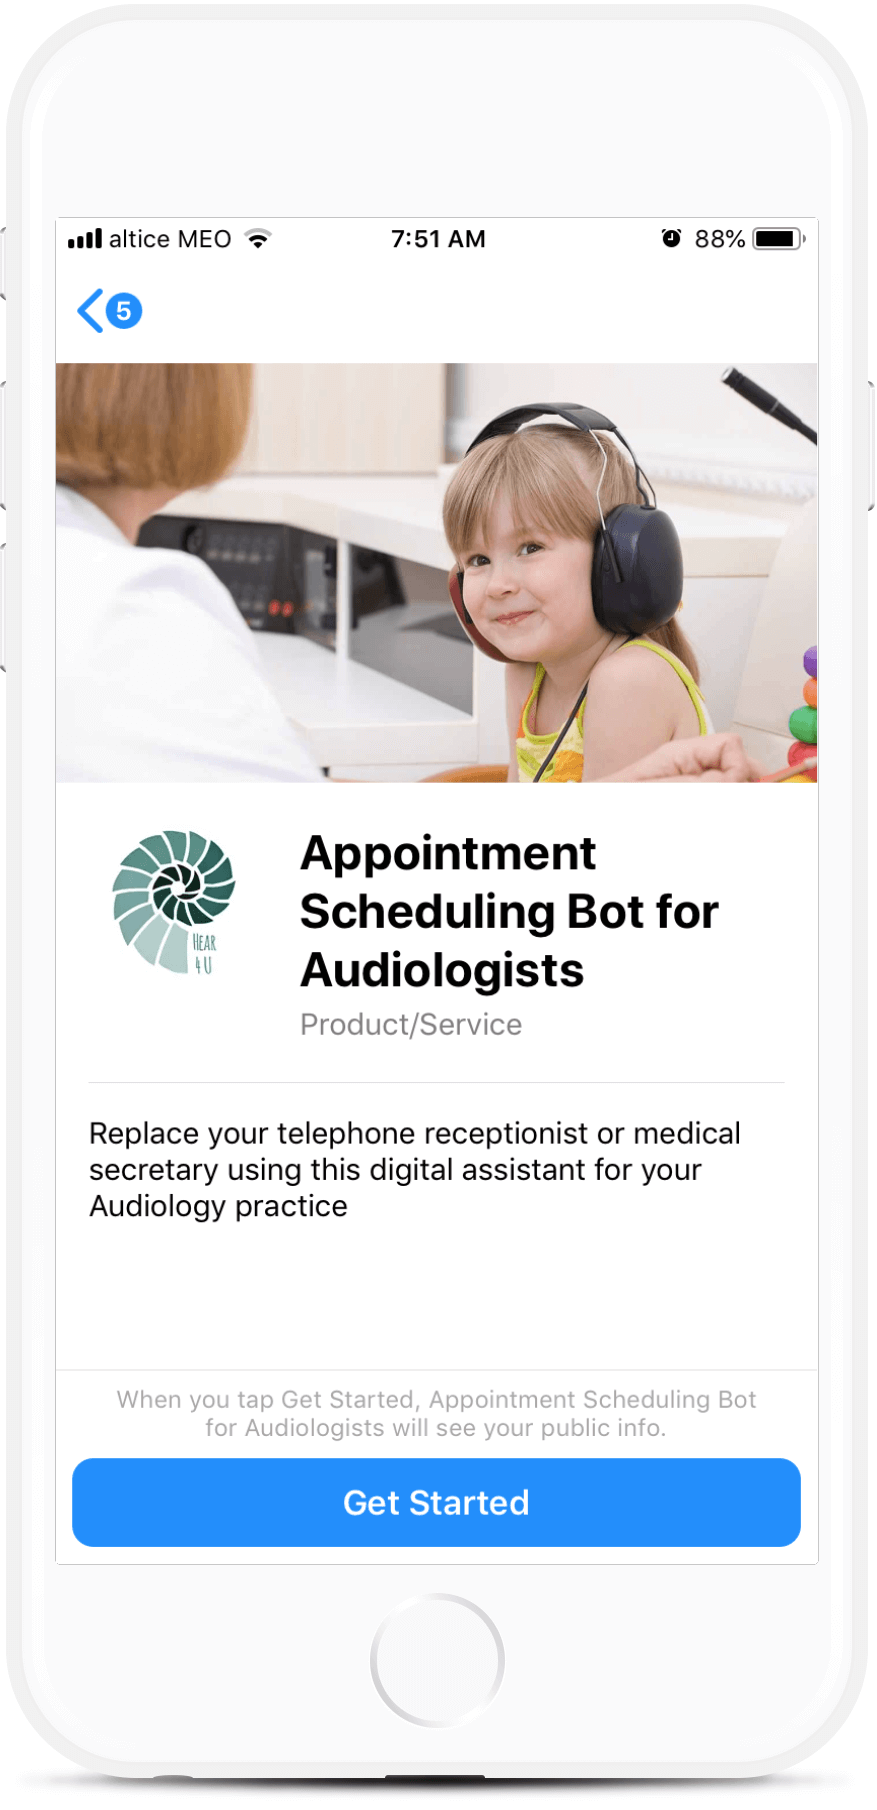 Appointment Scheduling Bot for Audiologists